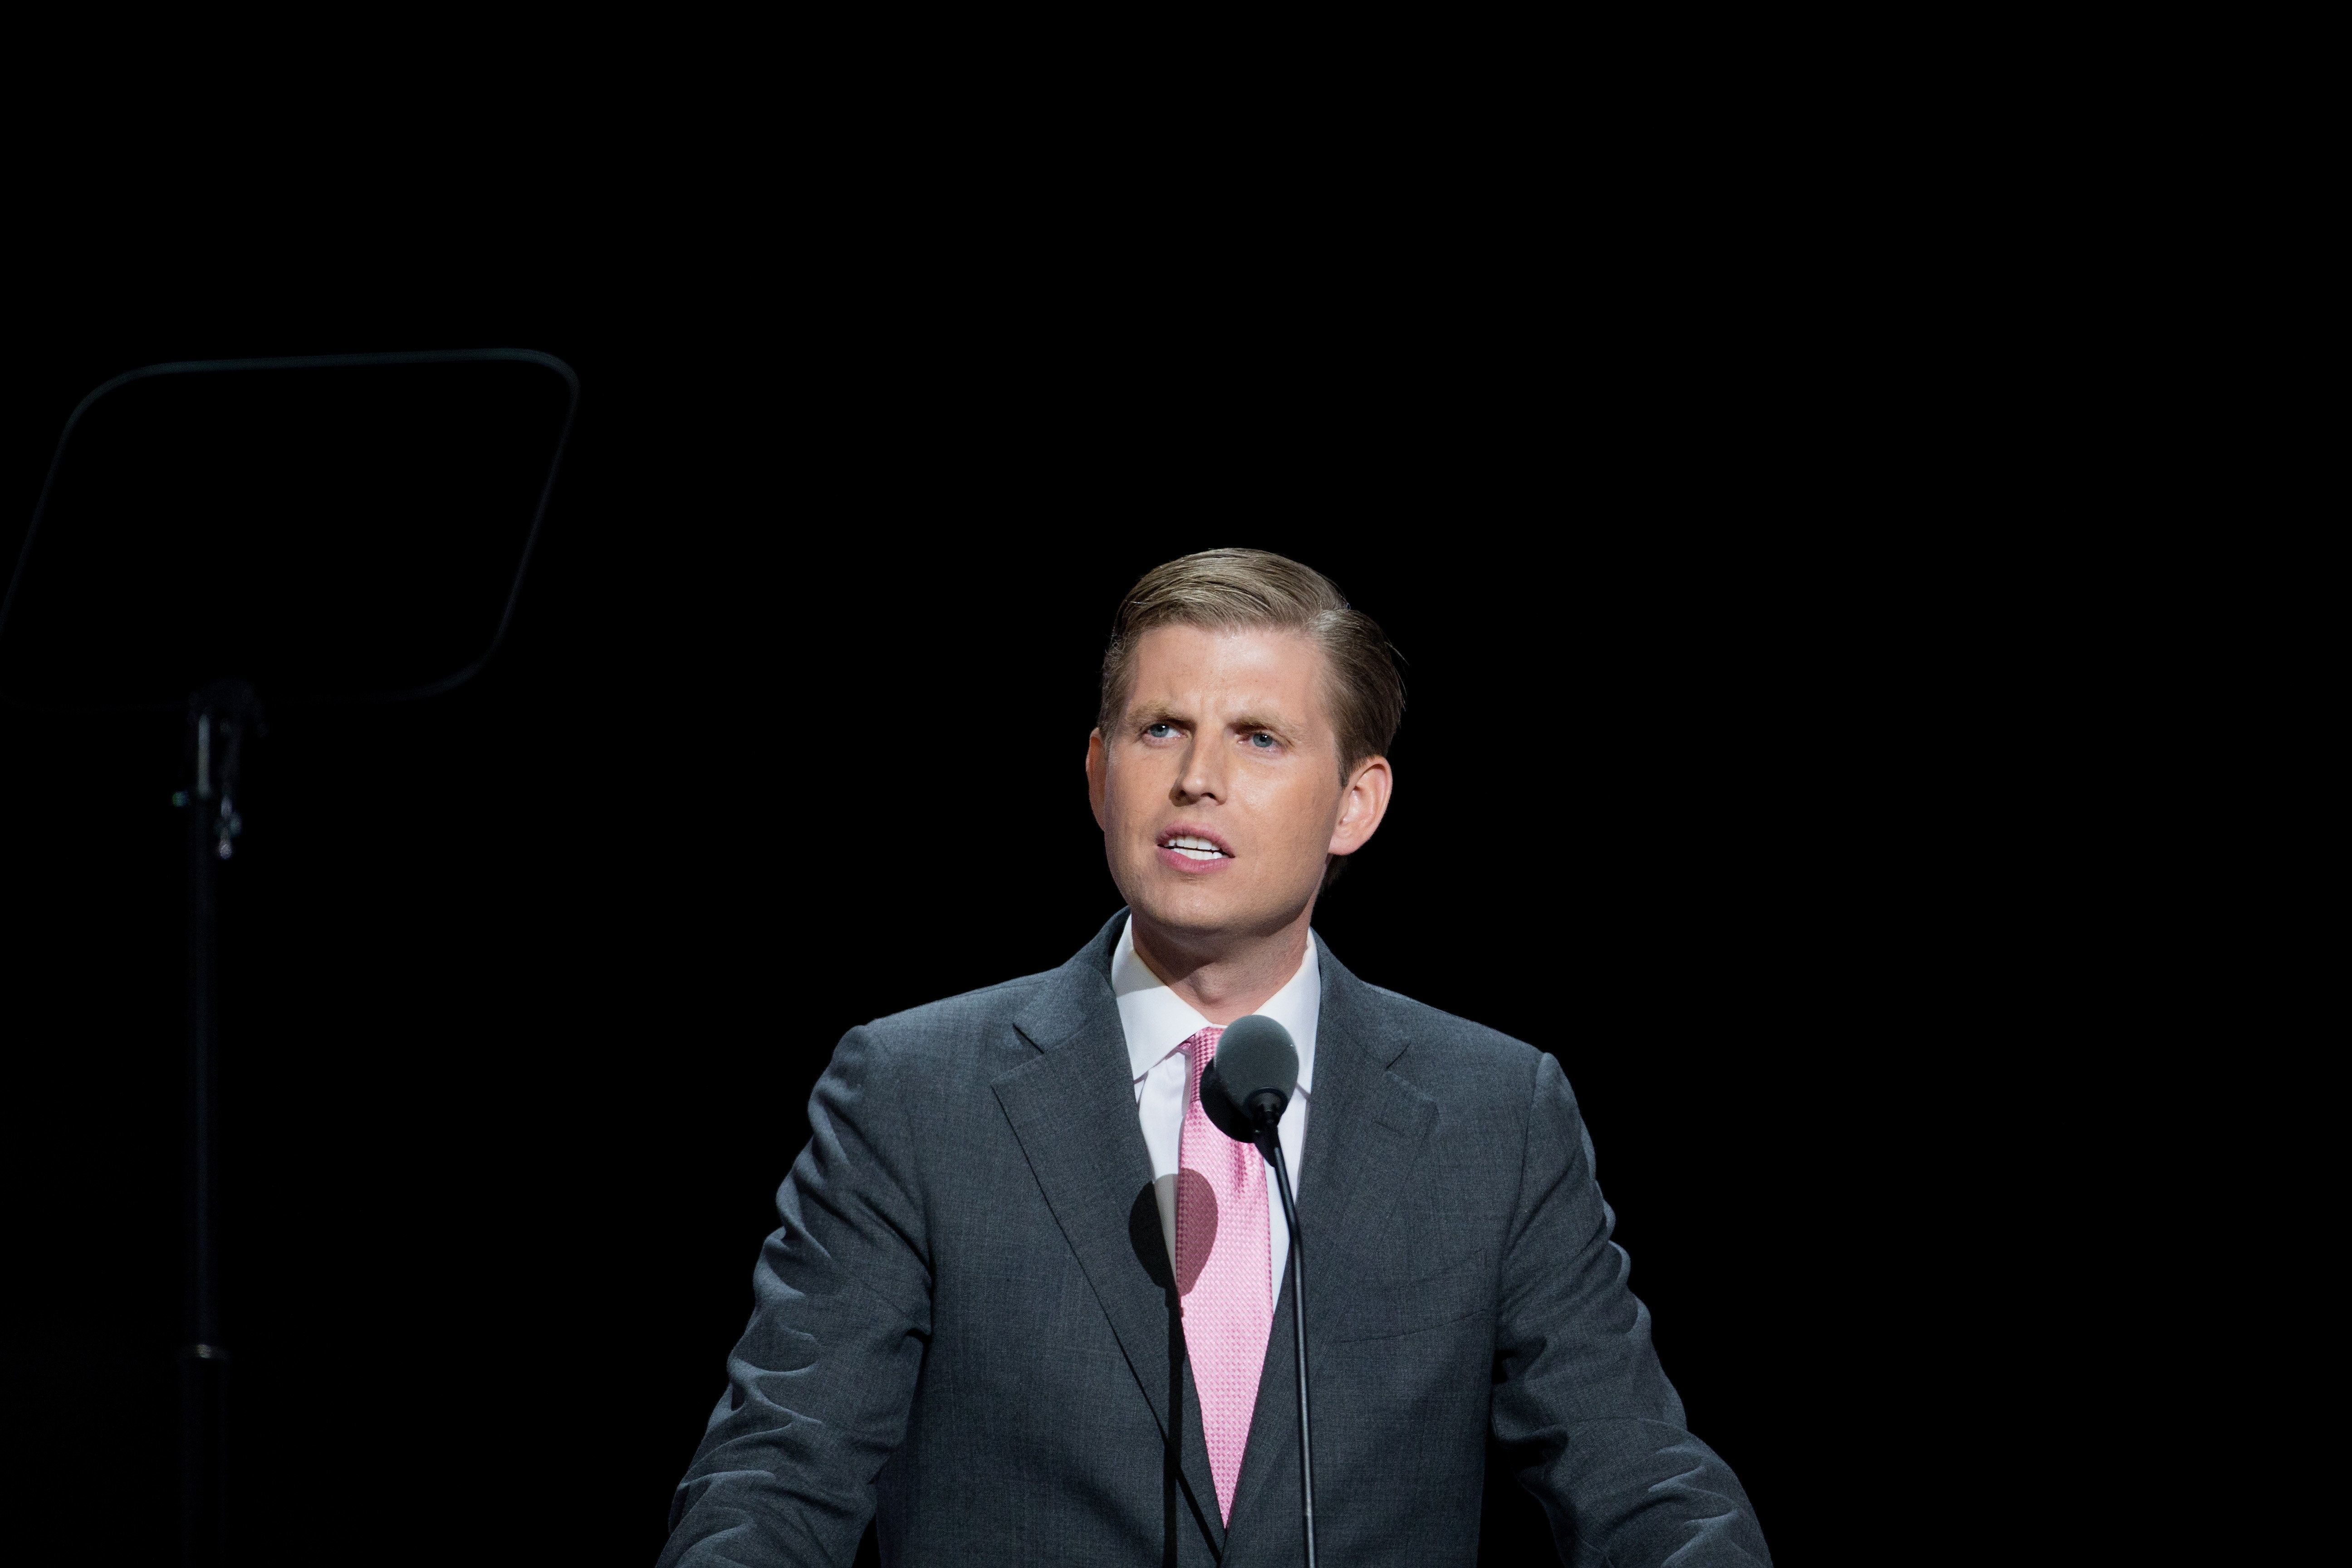 CLEVELAND, OH - JULY 20:  Eric Trump speaks on the third day of the Republican National Convention on July 20, 2016 at the Quicken Loans Arena in Cleveland, Ohio. An estimated 50,000 people are expected in Cleveland, including hundreds of prostesters and members of the media.  (Photo by Tasos Katopodis/WireImage)